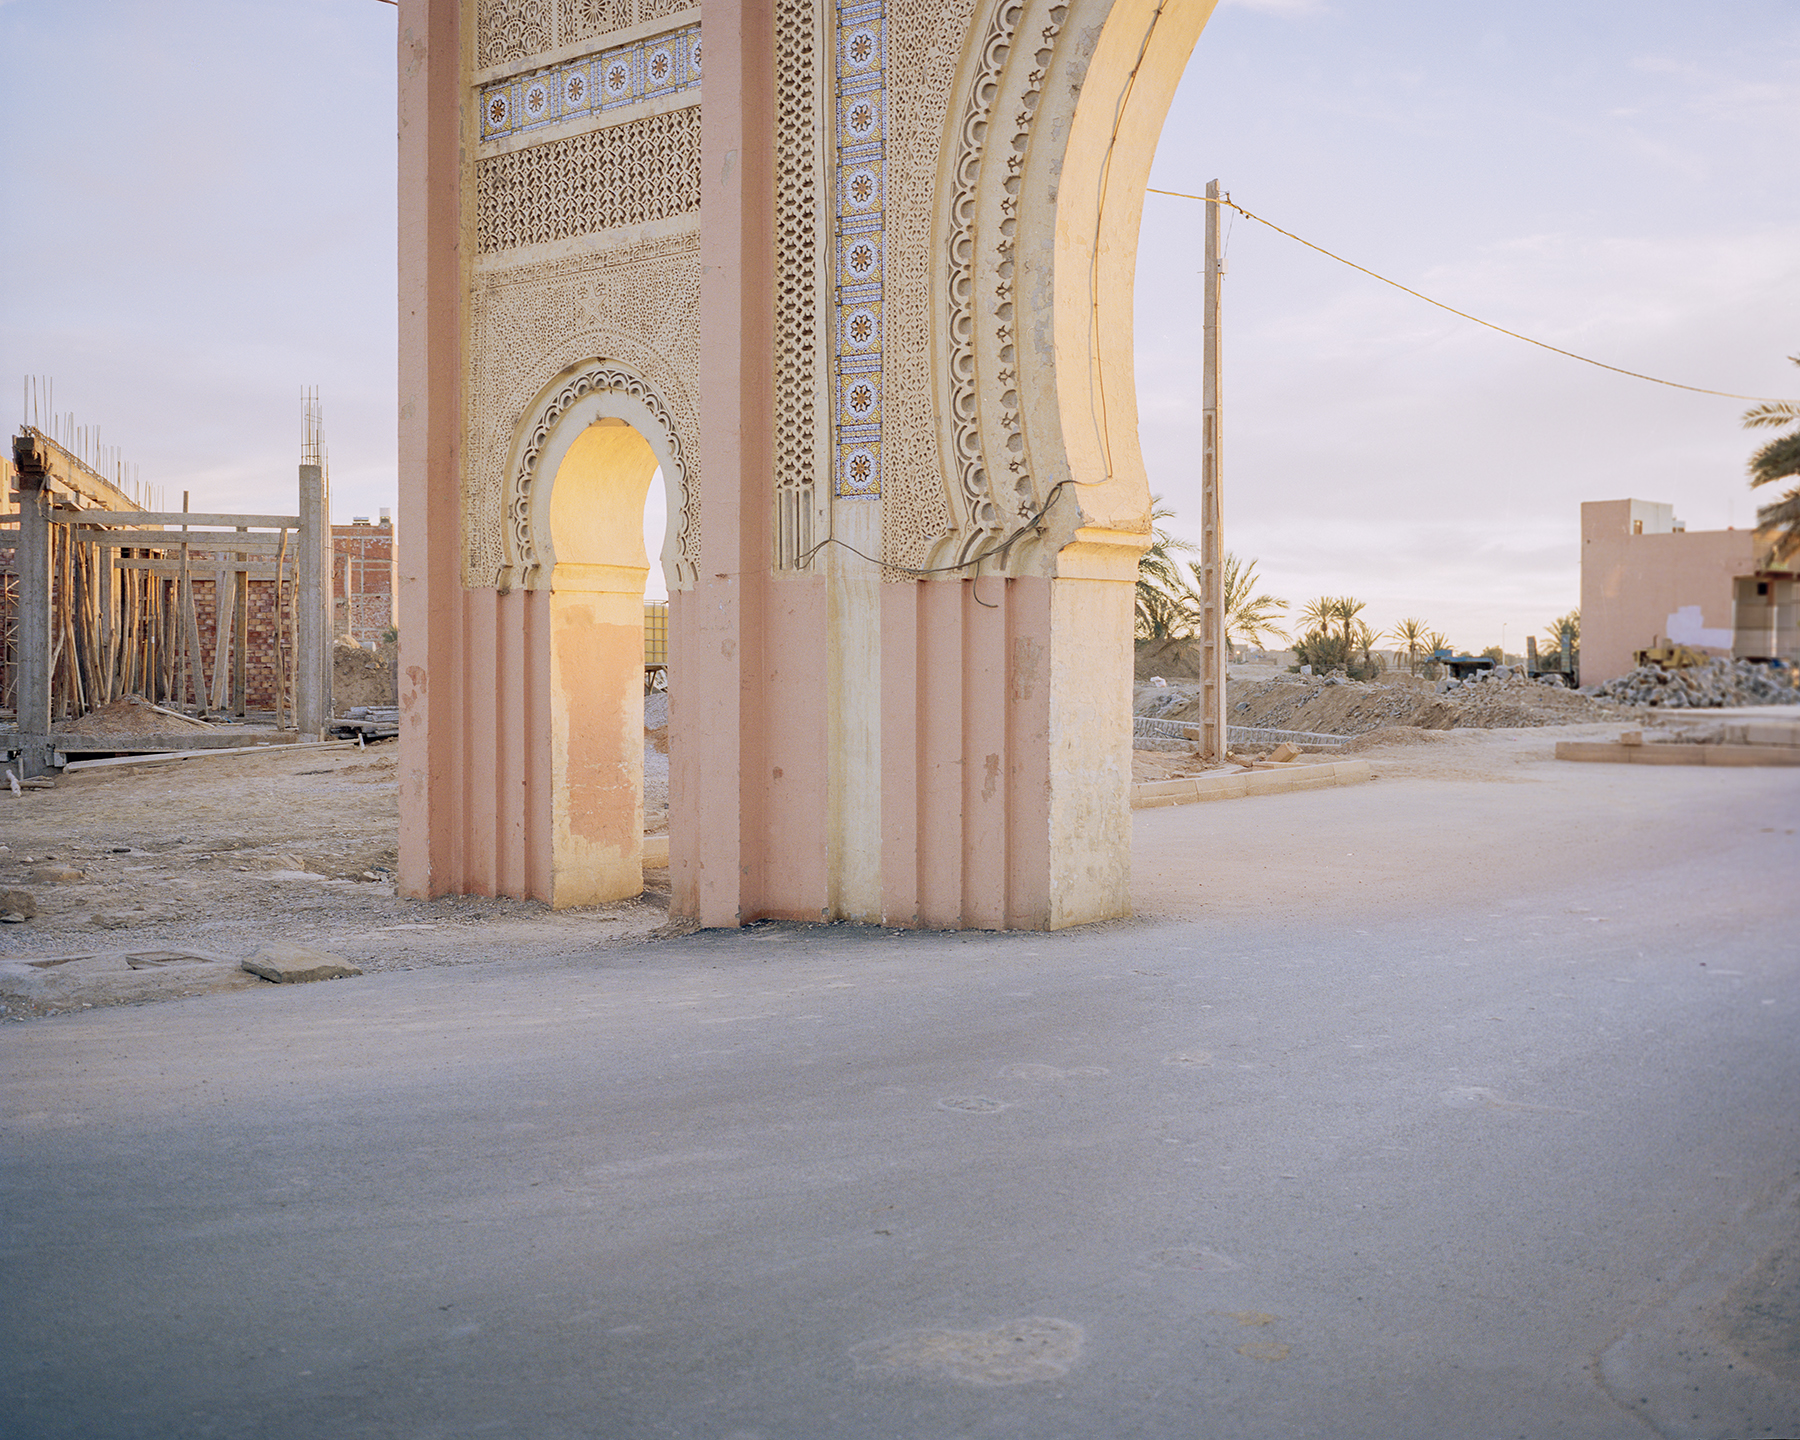 'The Promise' is a project that explores small towns in the northwest edge of the Sahara, Morocco